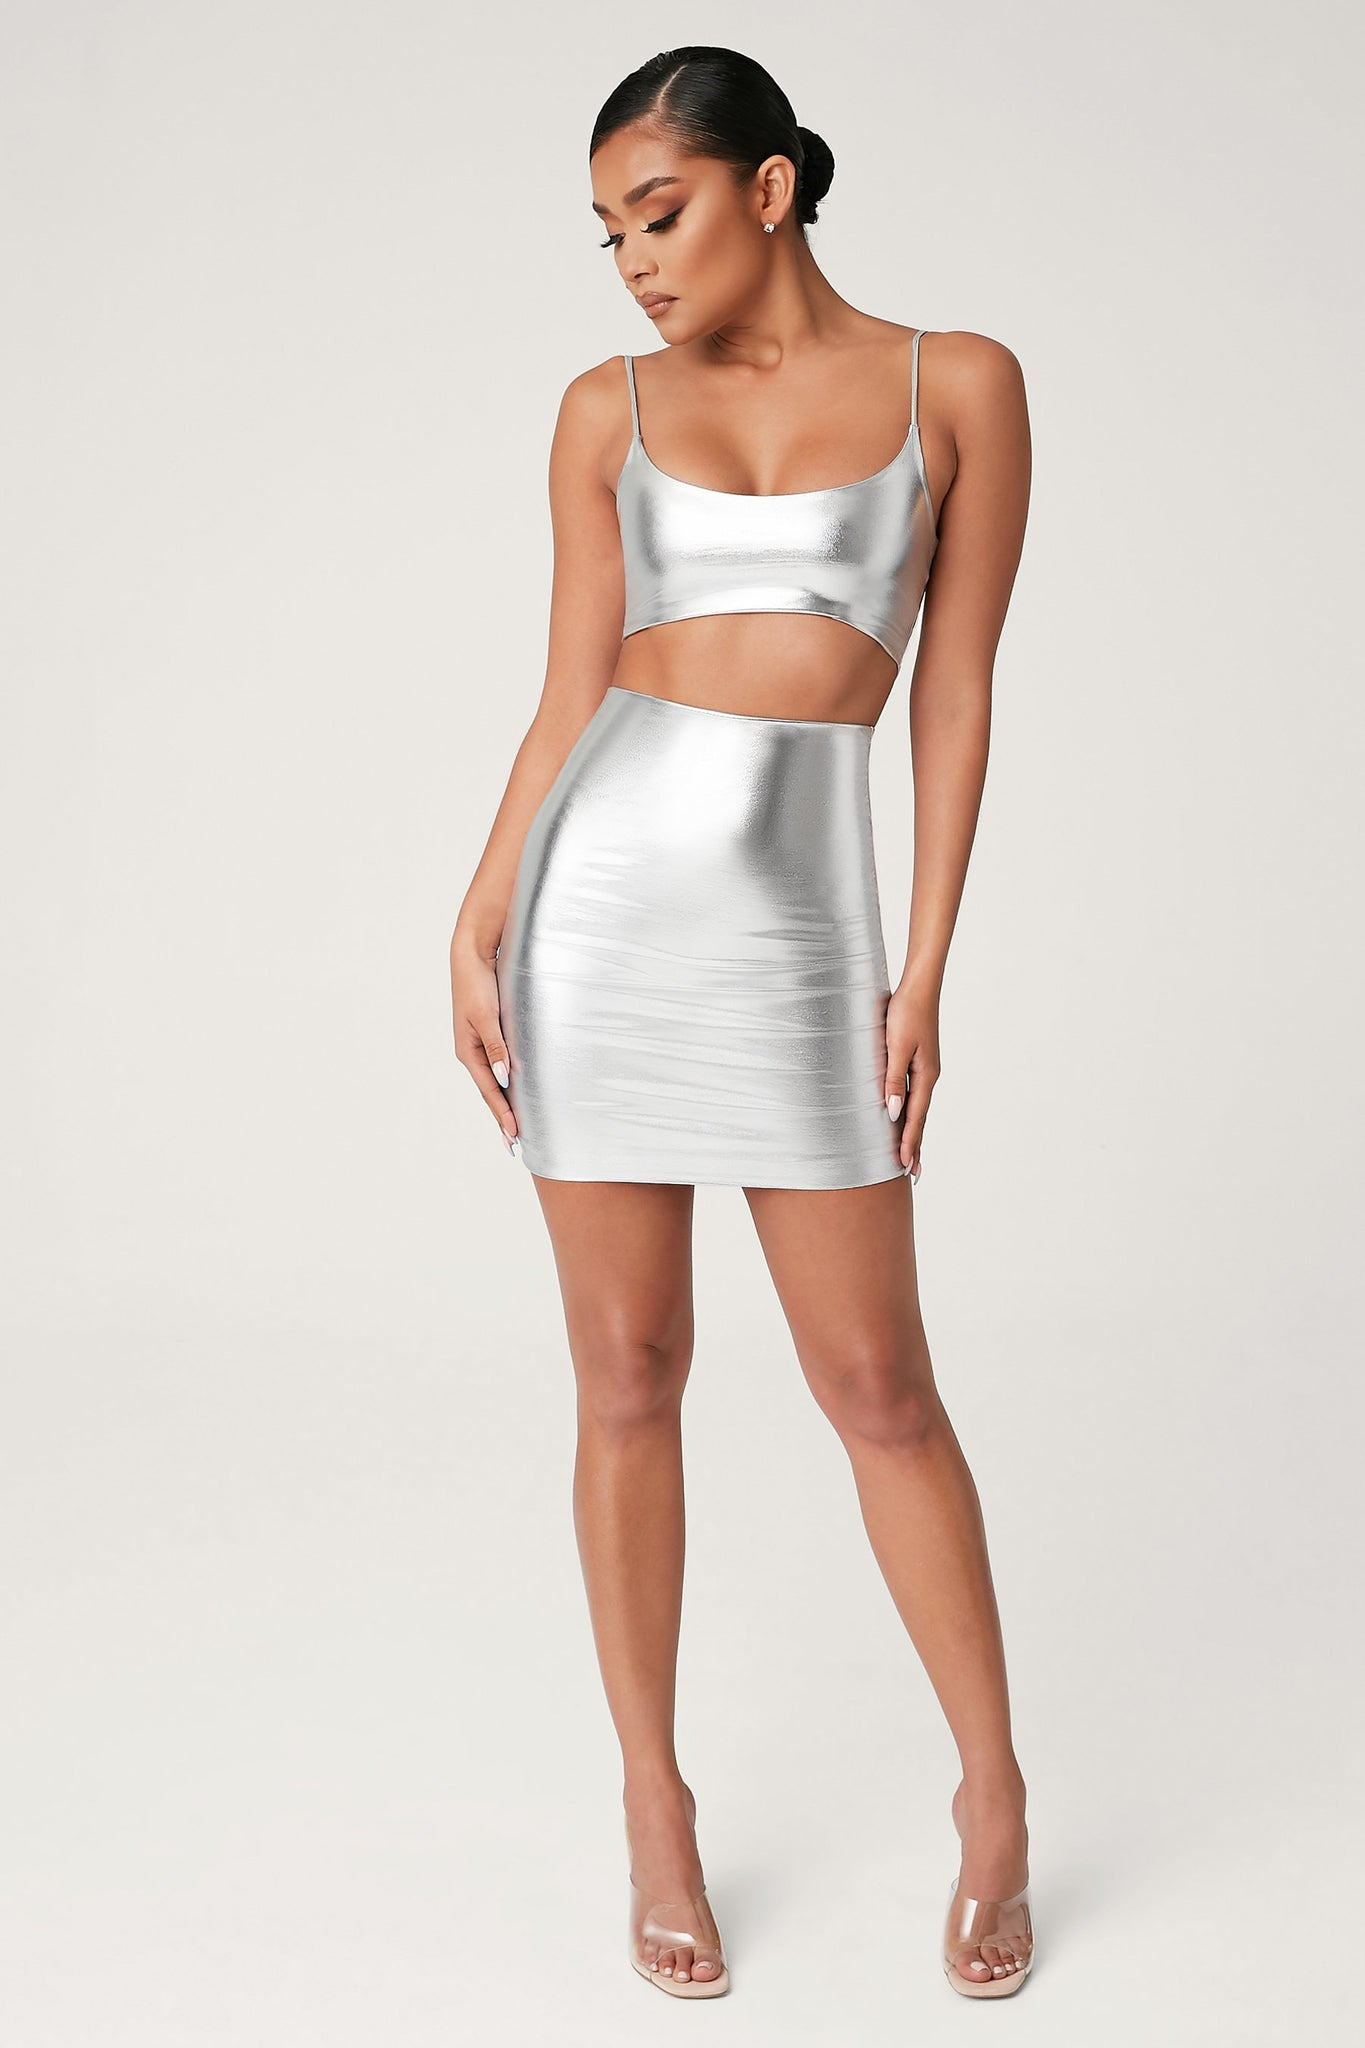 Zumi Metallic Mini Skirt - Silver - MESHKI